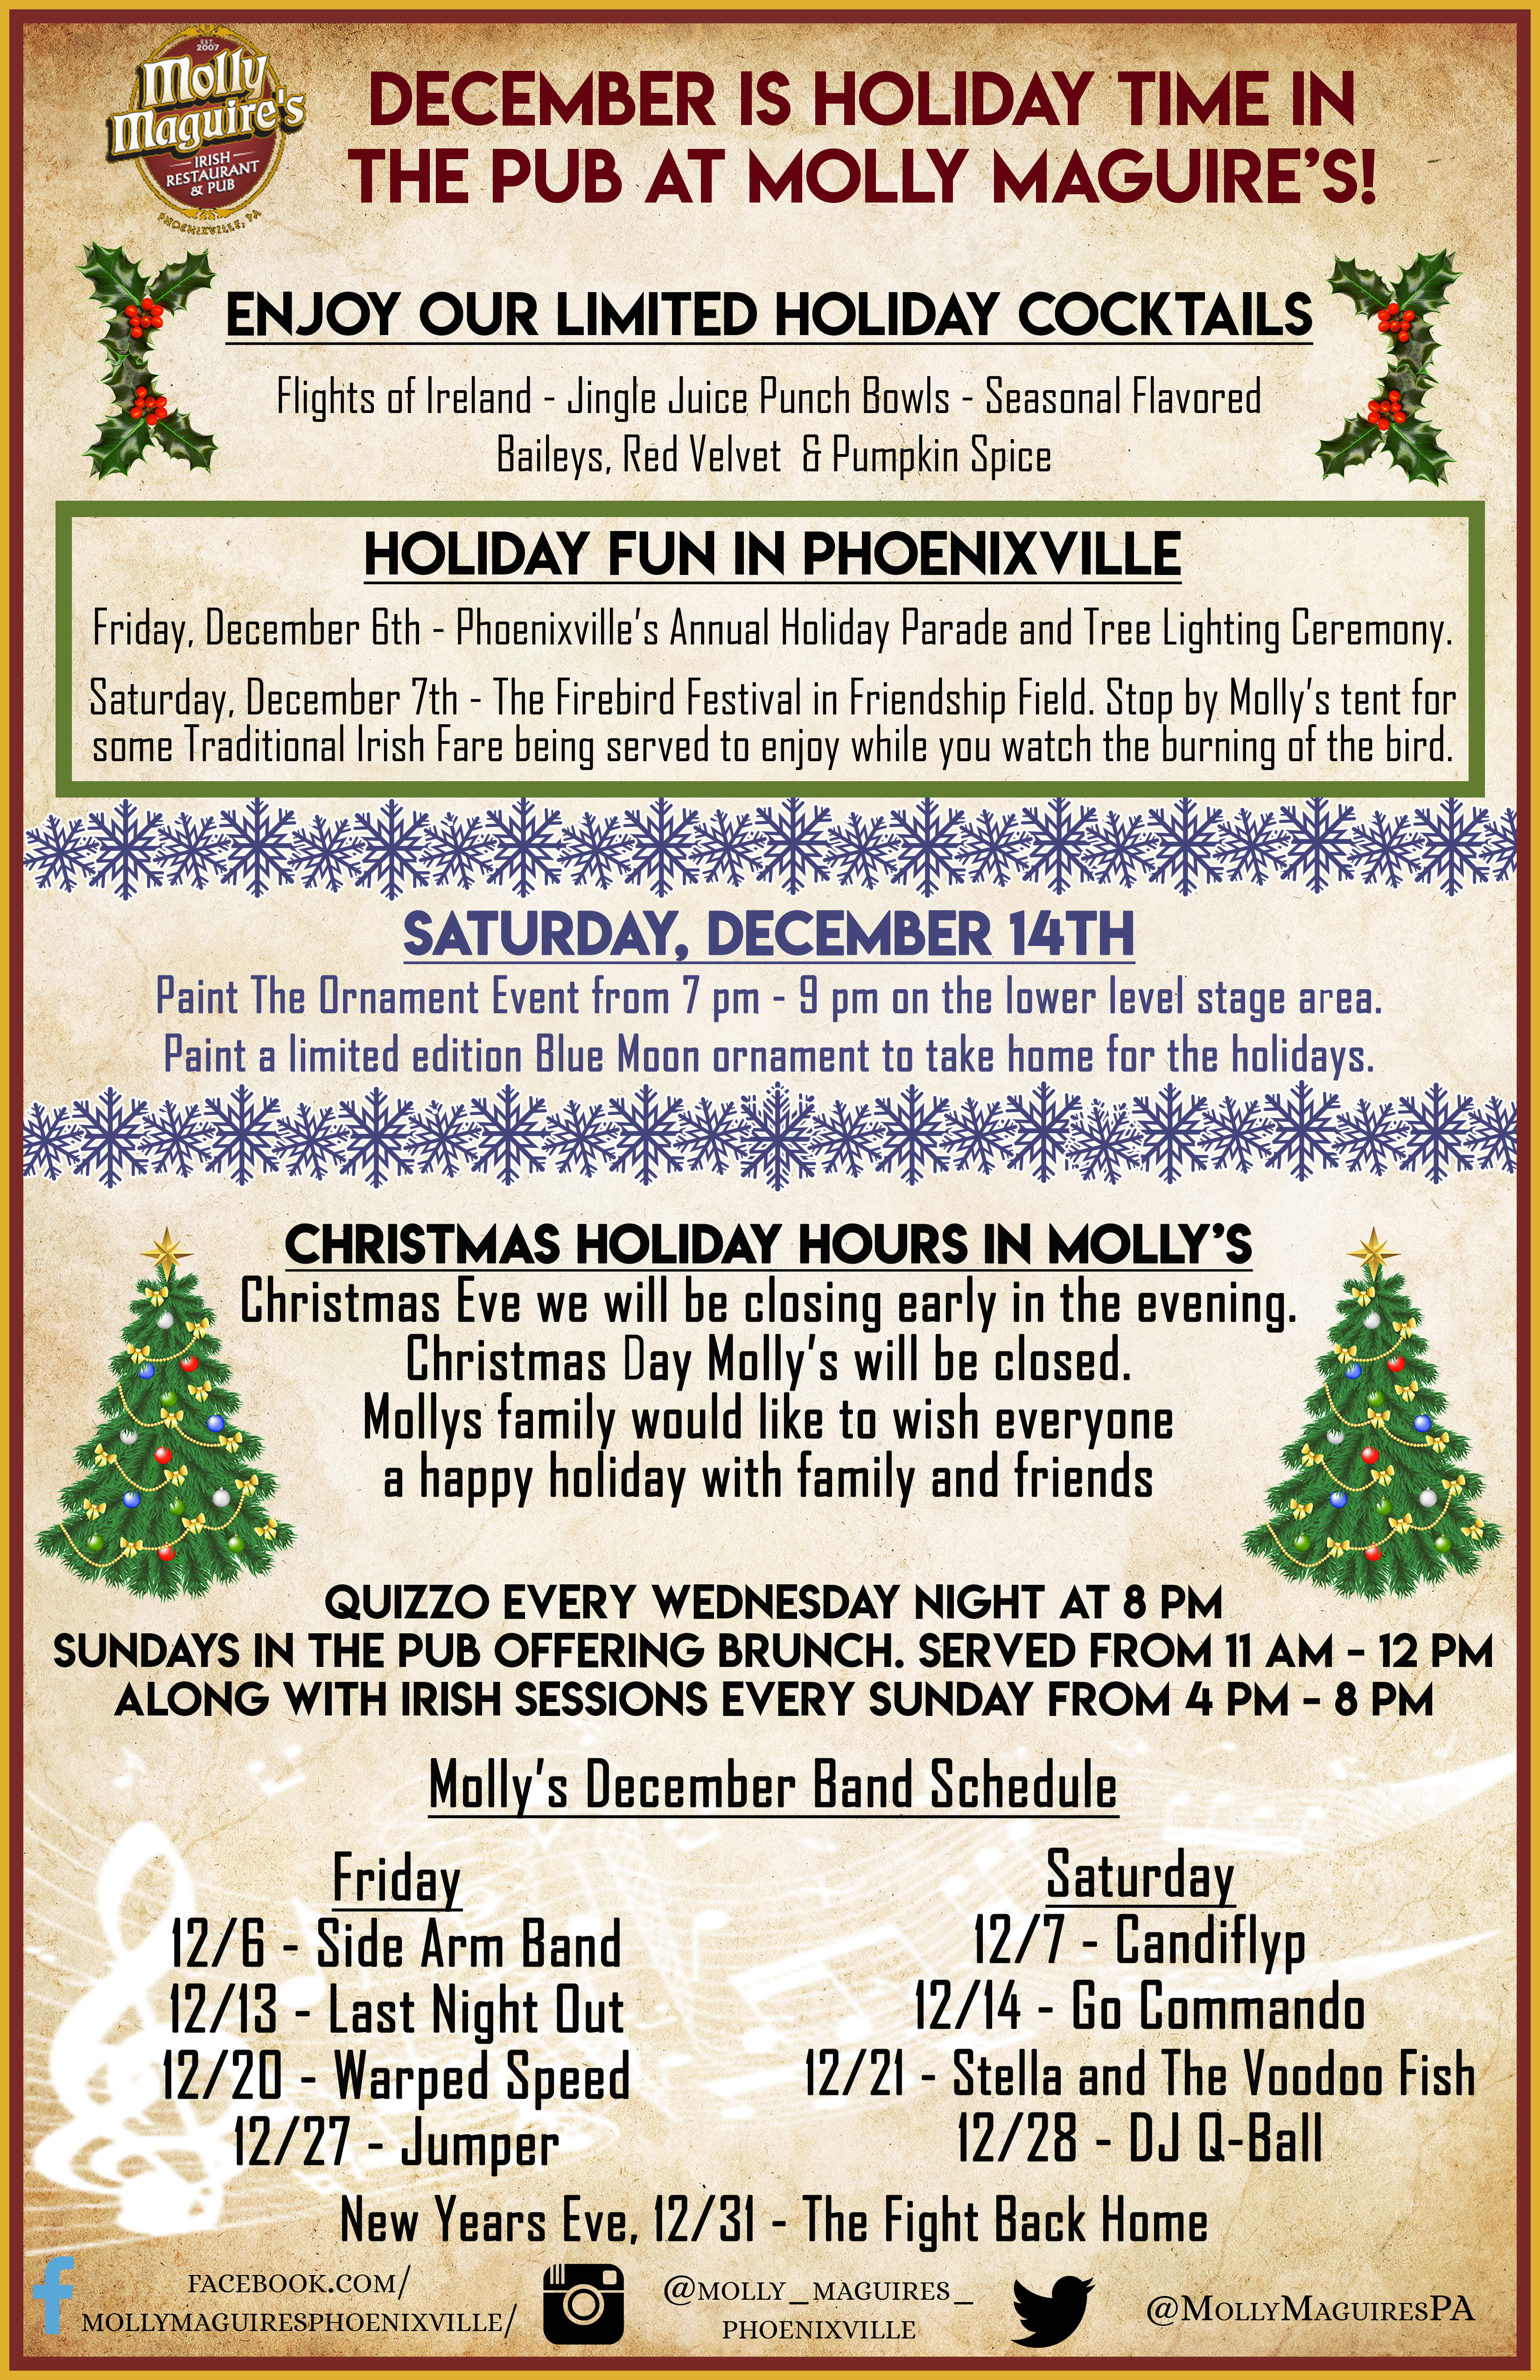 December Is Holiday Time in the pub at molly maguire's!  Enjoy Our Limited Holiday Cocktails  Flights of Ireland - Jingle Juice Punch Bowls - Seasonal Flavored Baileys, Red Velvet  & Pumpkin Spice  Holiday Fun In Phoenixville Friday, December 6th - Phoenixville's Annual Holiday Parade and Tree Lighting Ceremony.  Saturday, December 7th - The Firebird Festival in Friendship Field. Stop by Molly's tent for some Traditional Irish Fare being served to enjoy while you watch the burning of the bird.   Christmas Holiday Hours In Molly's Christmas Eve we will be closing early in the evening. Christmas Day Molly's will be closed.  Mollys family would like to wish everyone a happy holiday with family and frieds  Quizzo Every Wednesday Night At 8 PM Sundays in the Pub offering Brunch. Served from 11 AM - 12 PM Along with Irish Sessions Every Sunday From 4 PM - 8 PM  Molly's December Band Schedule Friday 12/6 - Side Arm Band 12/13 - Last Night Out 12/20 - Warped Speed 12/27 - Jumper Saturday 12/7 - Candiflyp 12/14 - Go Commando 12/21 - Stella and The Voodoo Fish 12/28 - DJ Q-Ball New Years Eve, 12/31 - The Fight Back Home